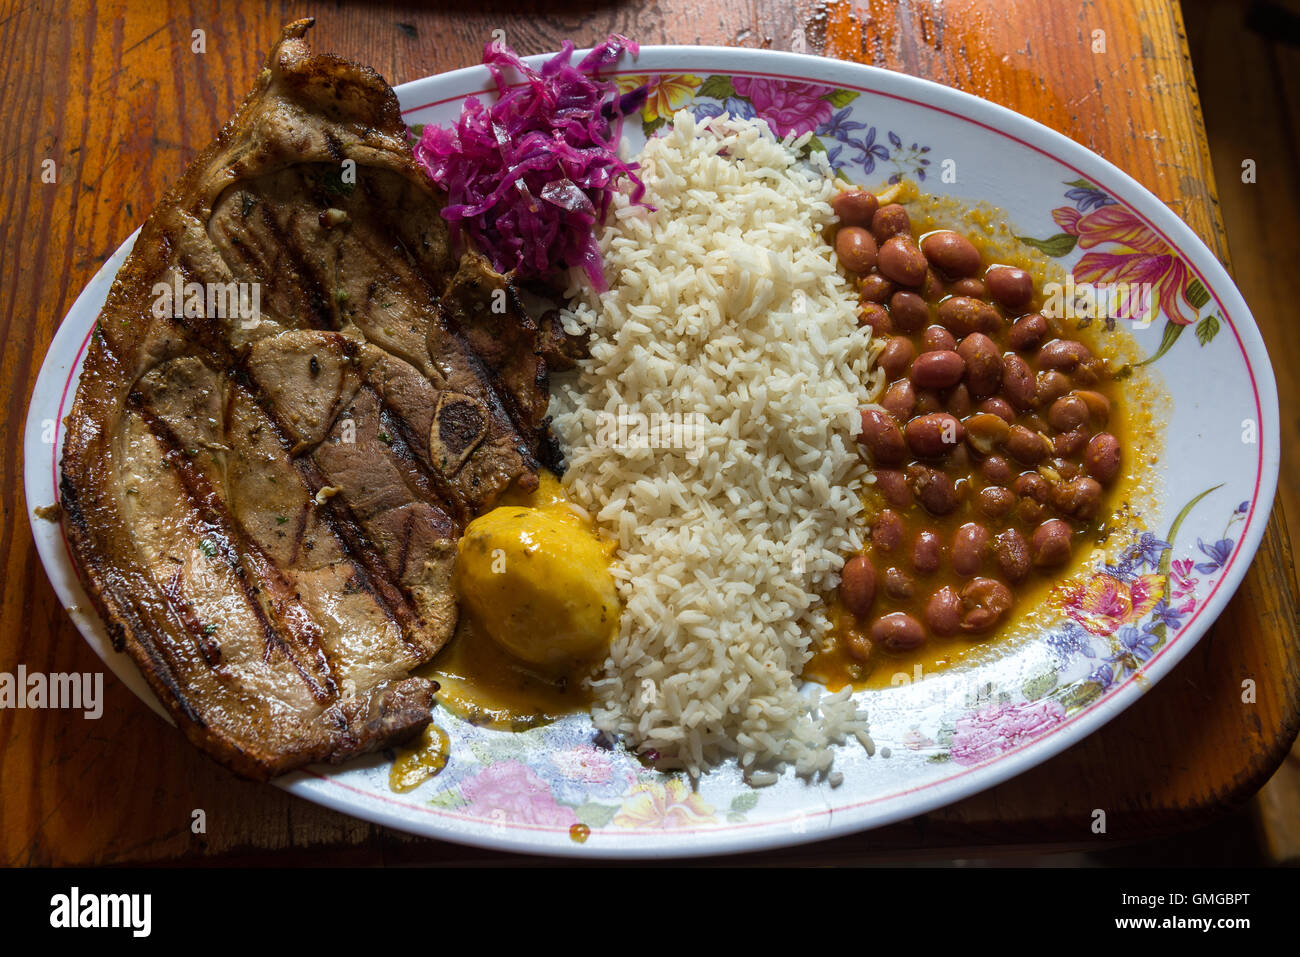 A Typical South American Meal Rice Beans And Grilled Meat Quito Stock Photo Alamy